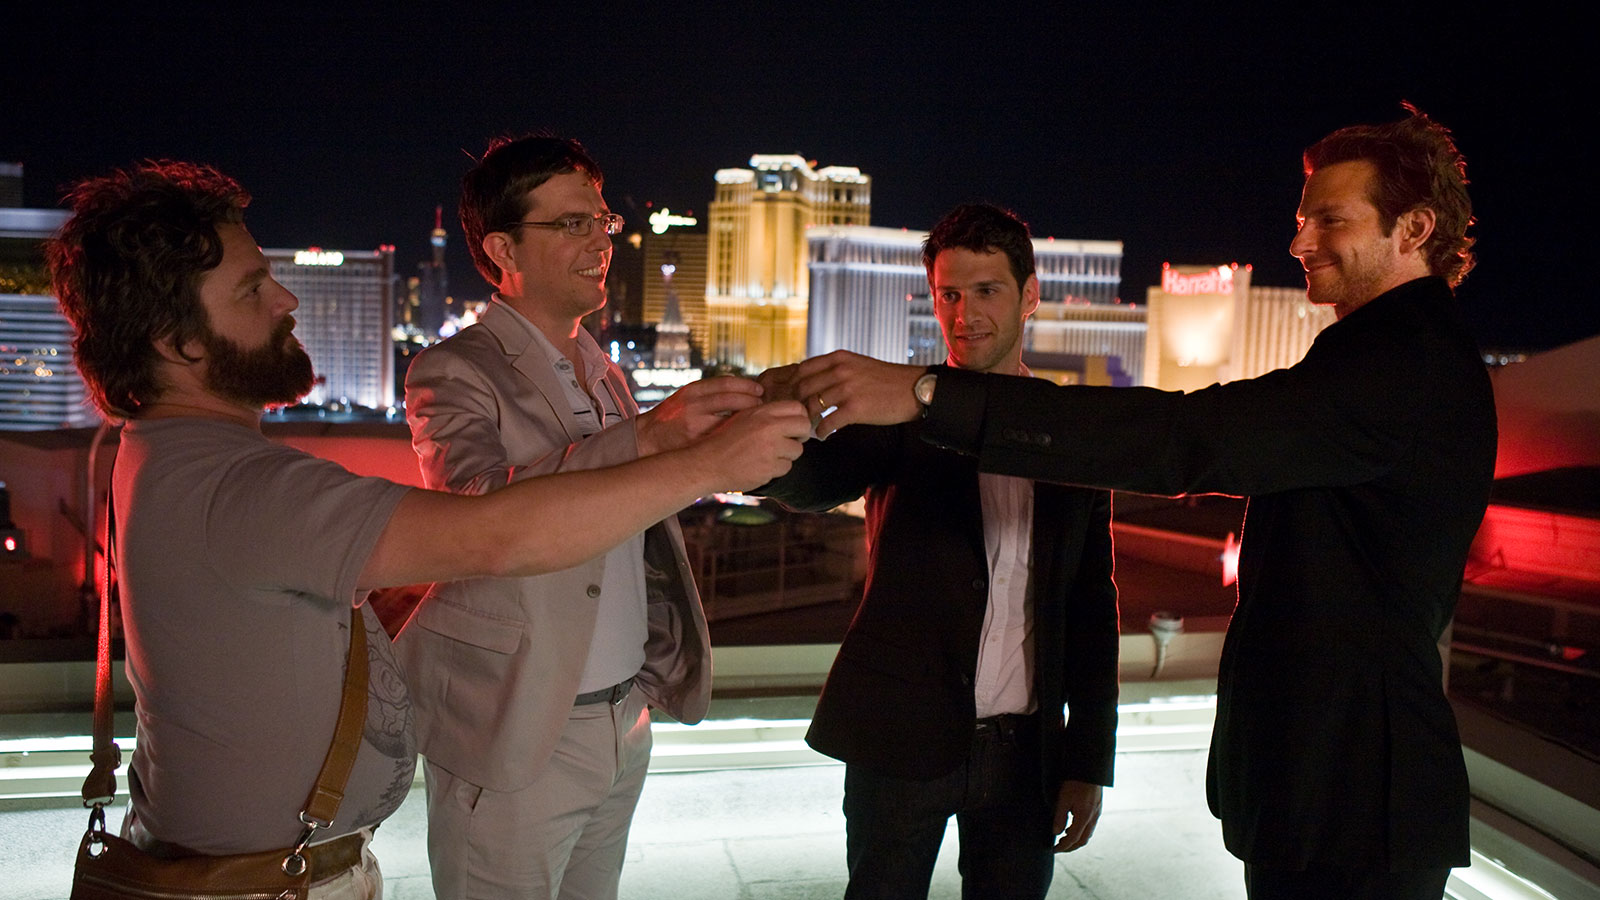 film thehangover featureimage desktop 1600x900